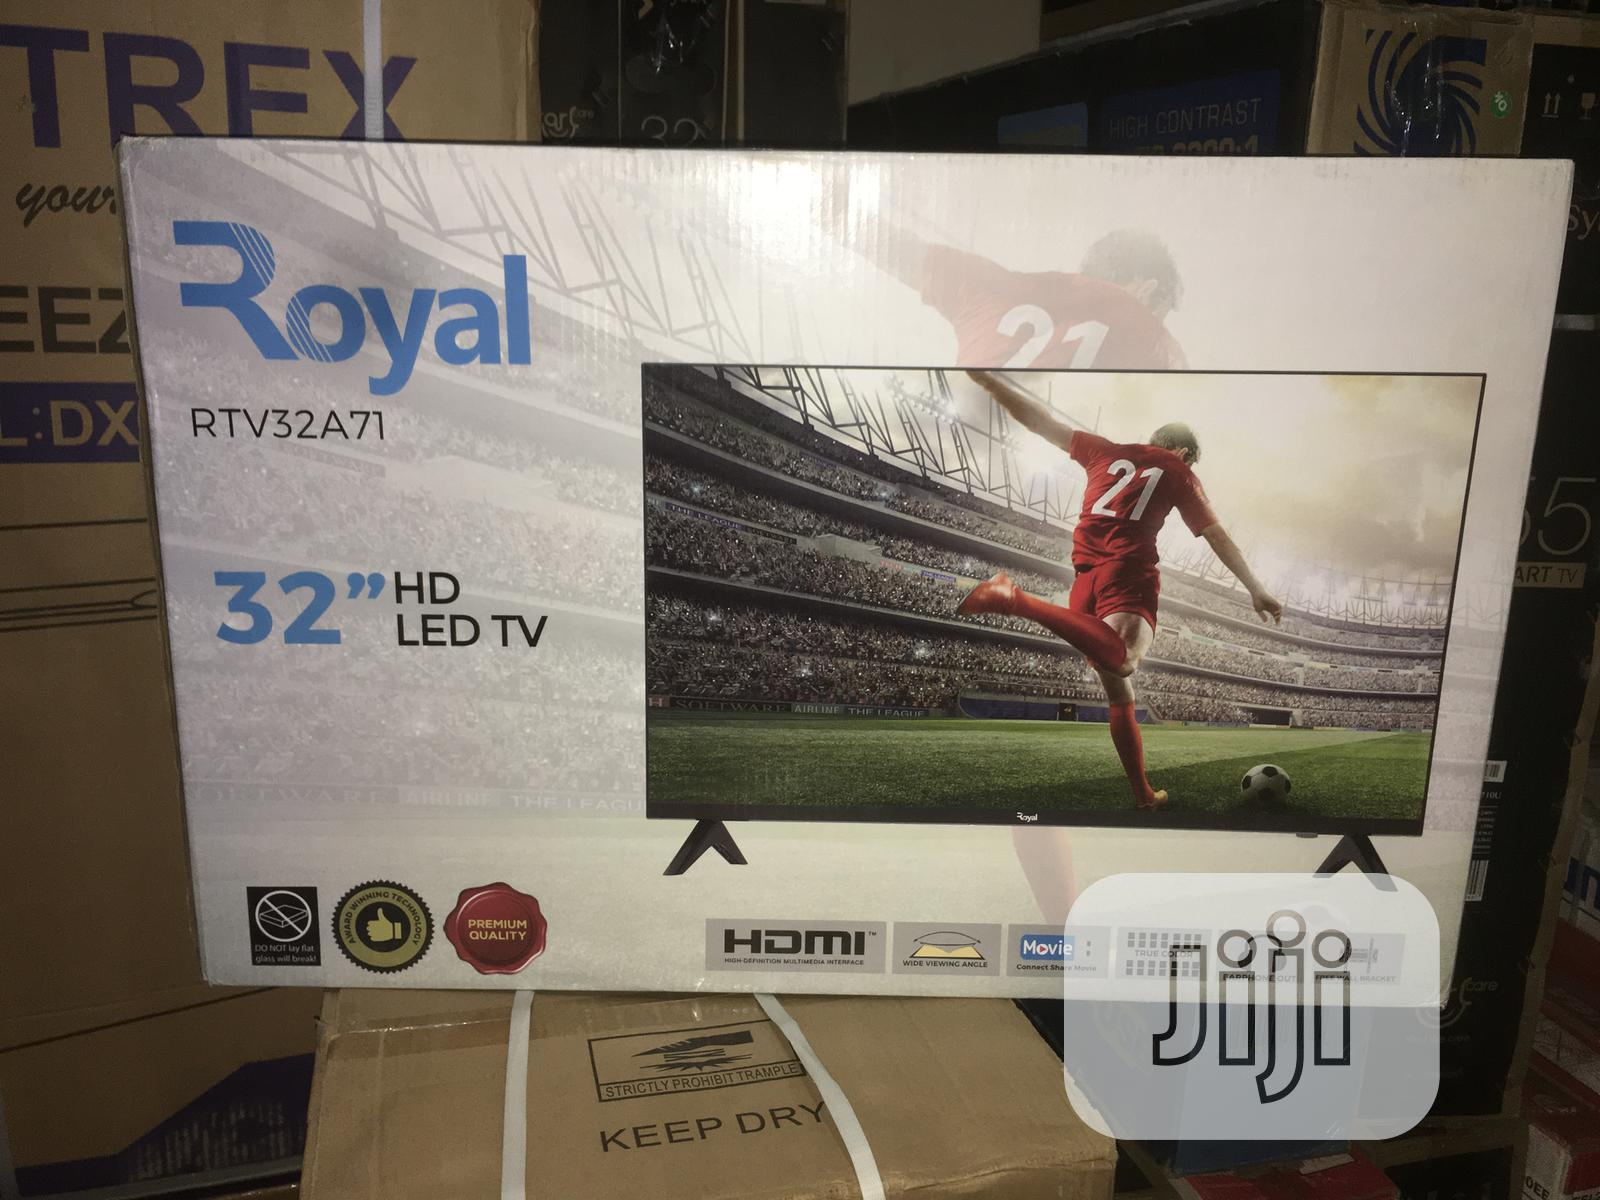 Royal Hd Tv 32 Inches